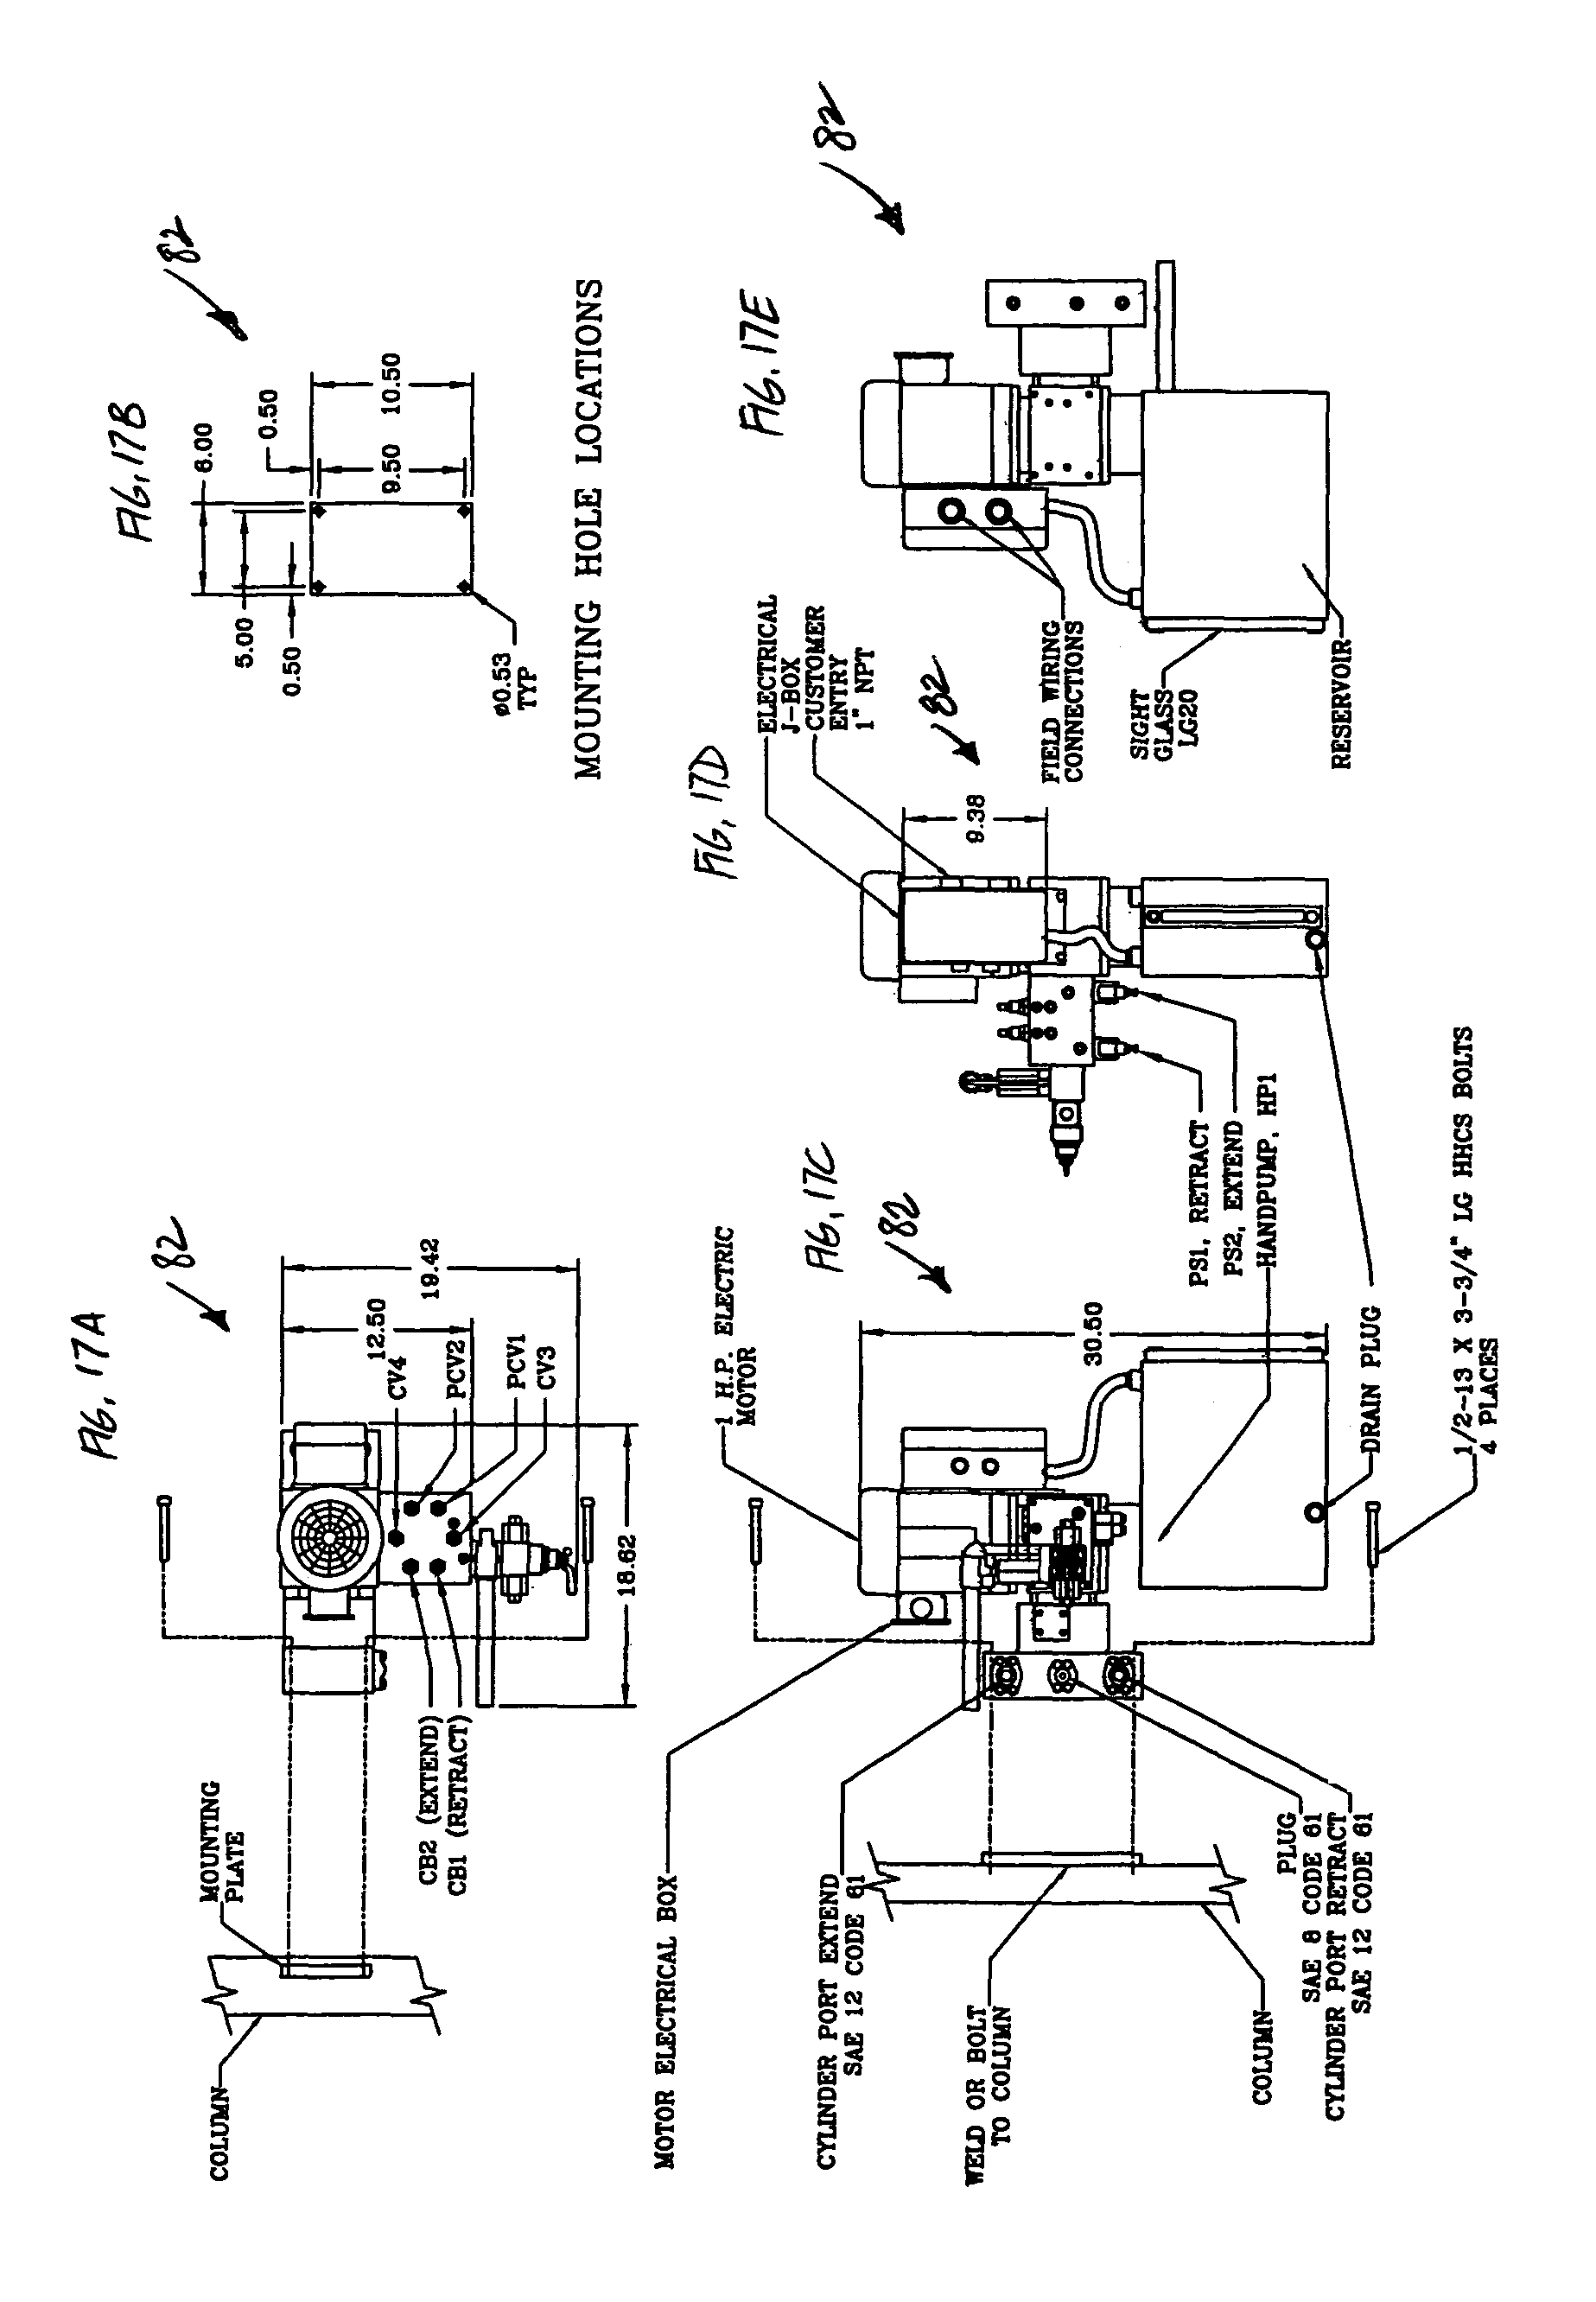 hight resolution of patent us7980636 automated gate control and methods